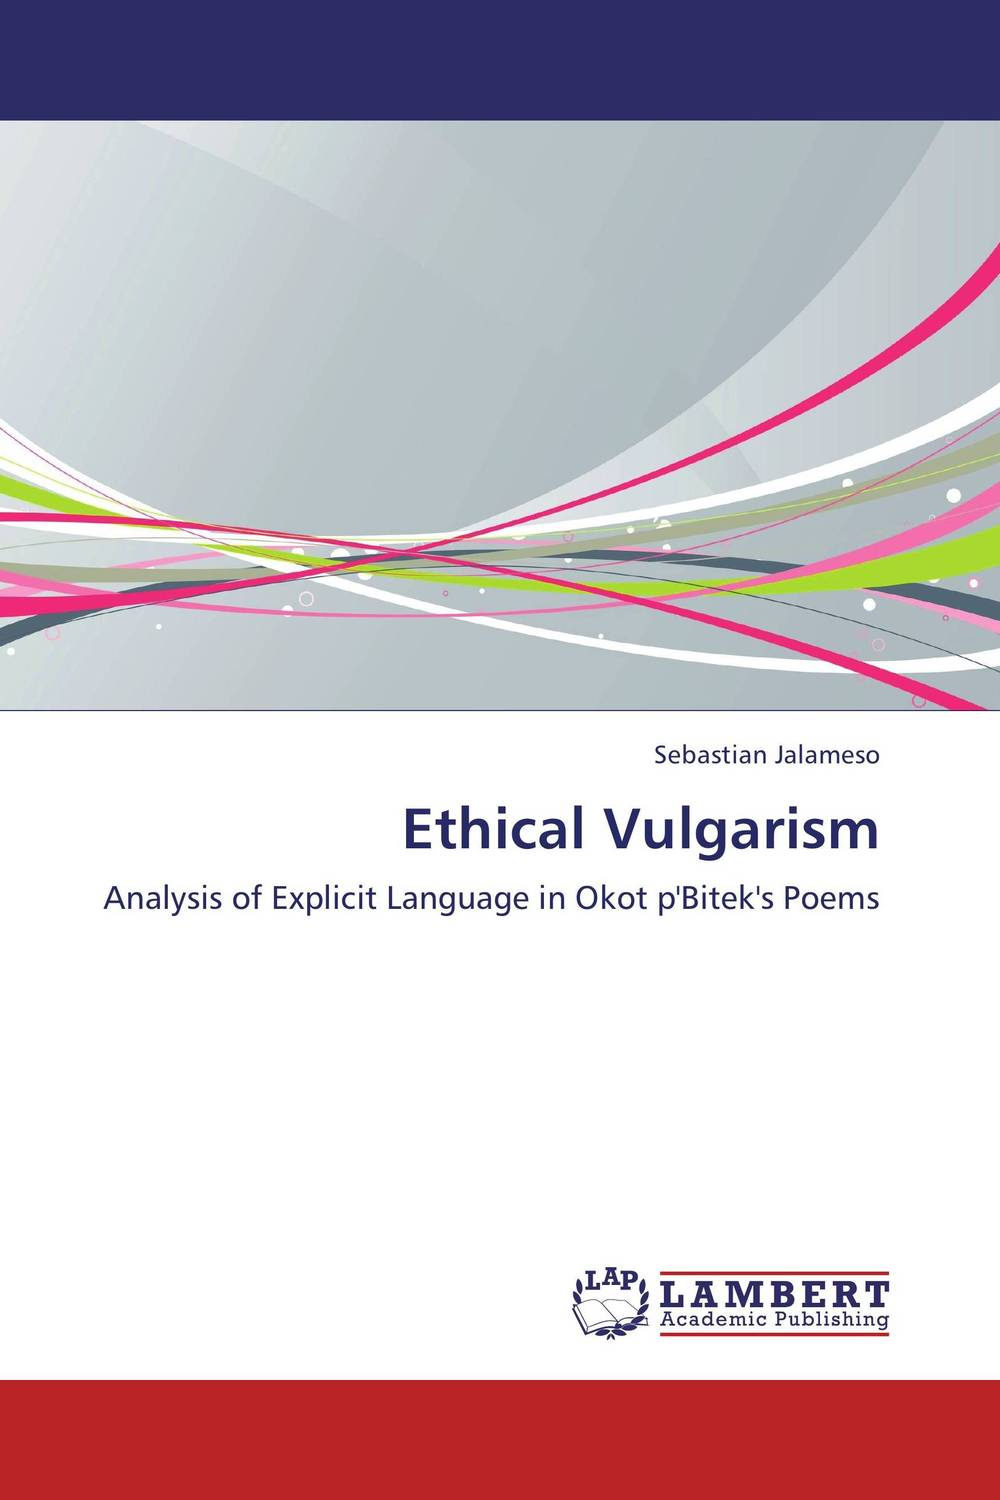 Ethical Vulgarism things are disappearing here – poems